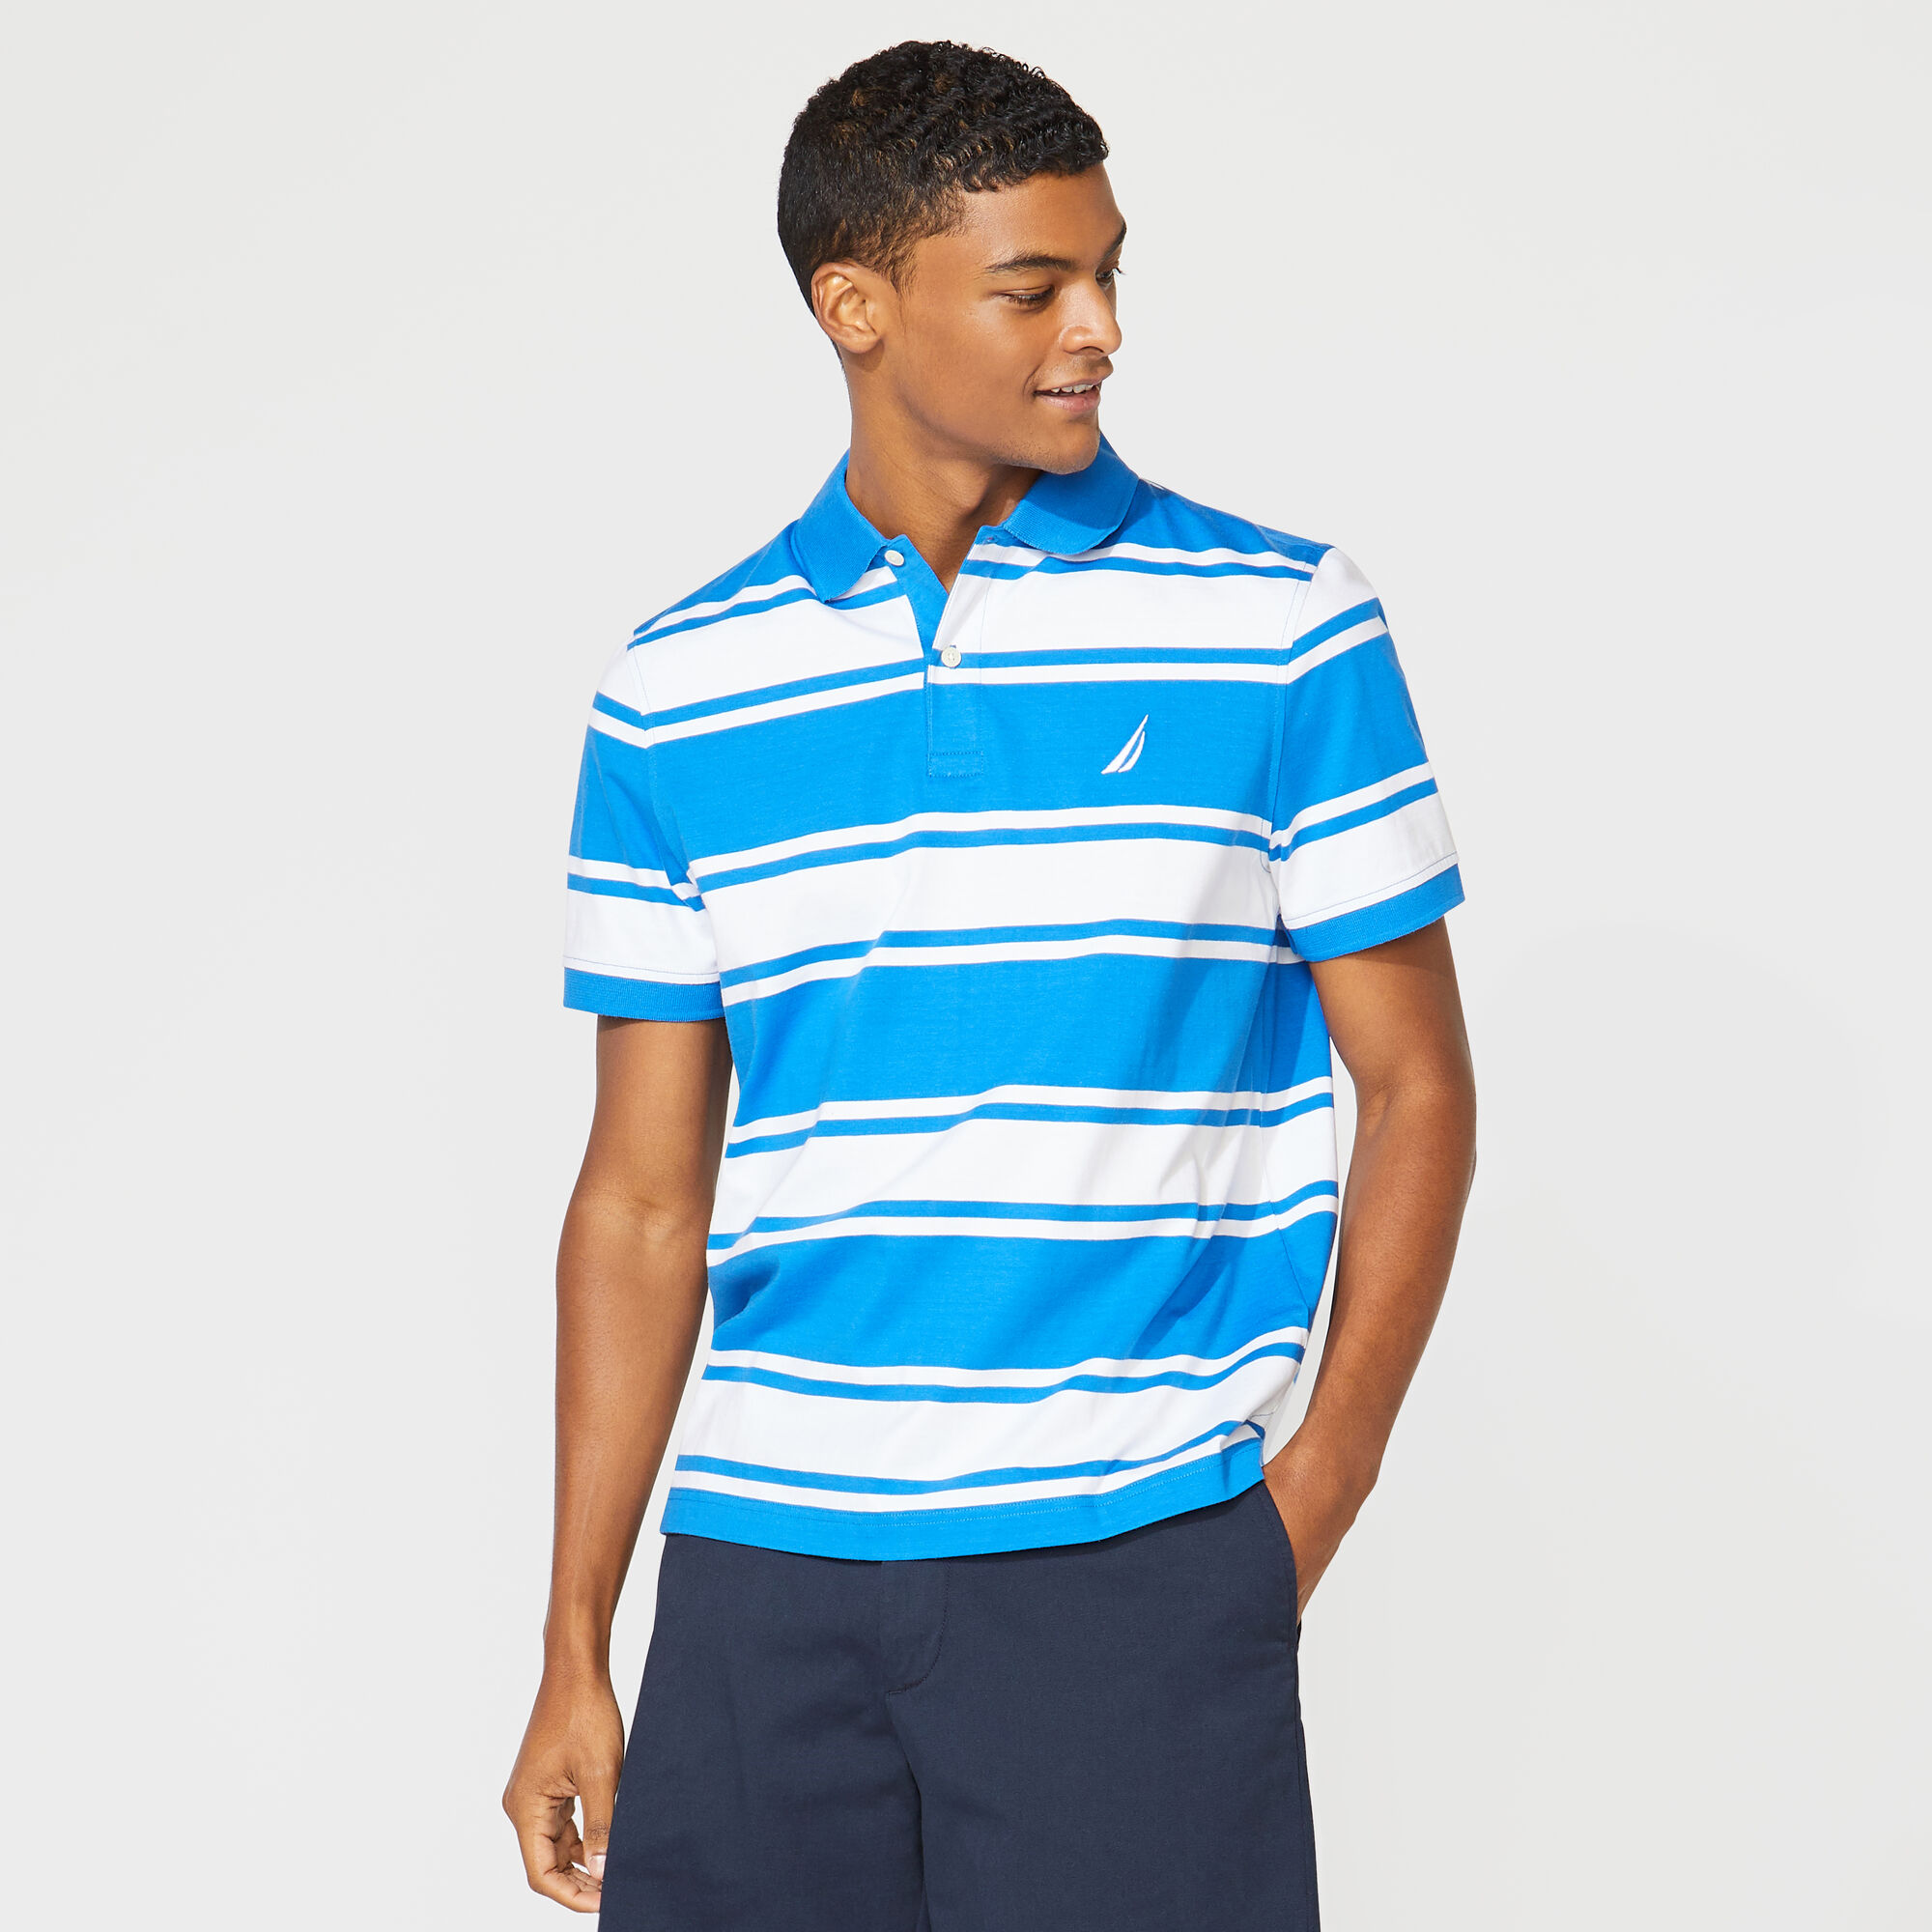 Nautica Mens Classic Fit Striped Polo (various colors/sizes)